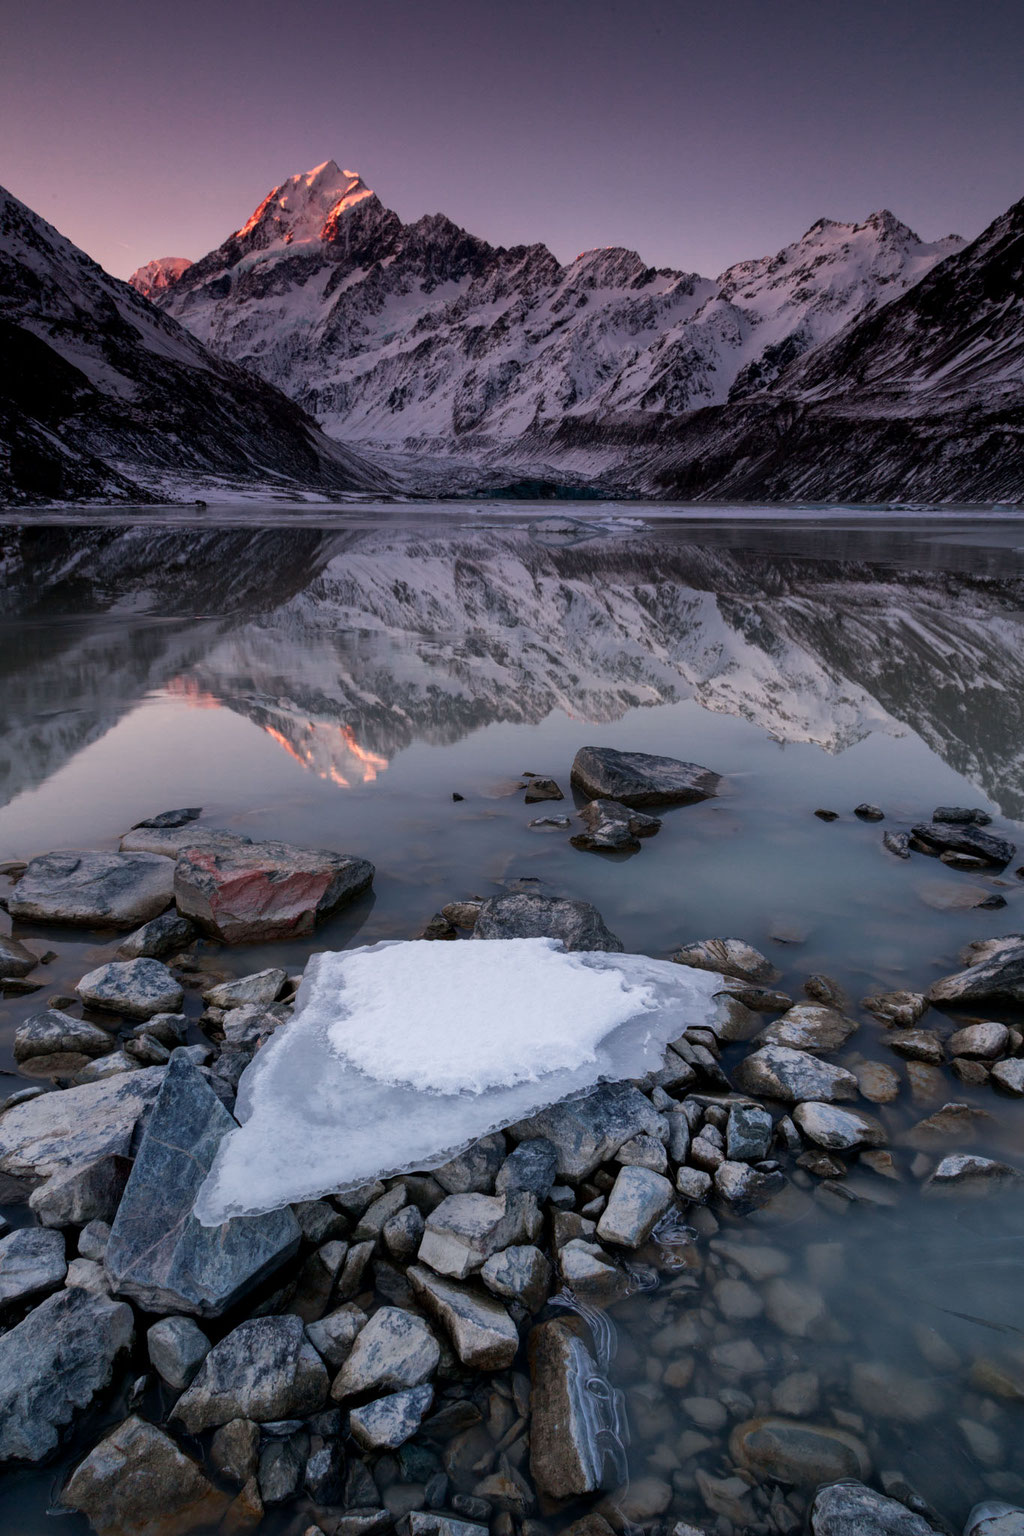 Winter scenery of Mount Cook reflecting in the Hooker Lake